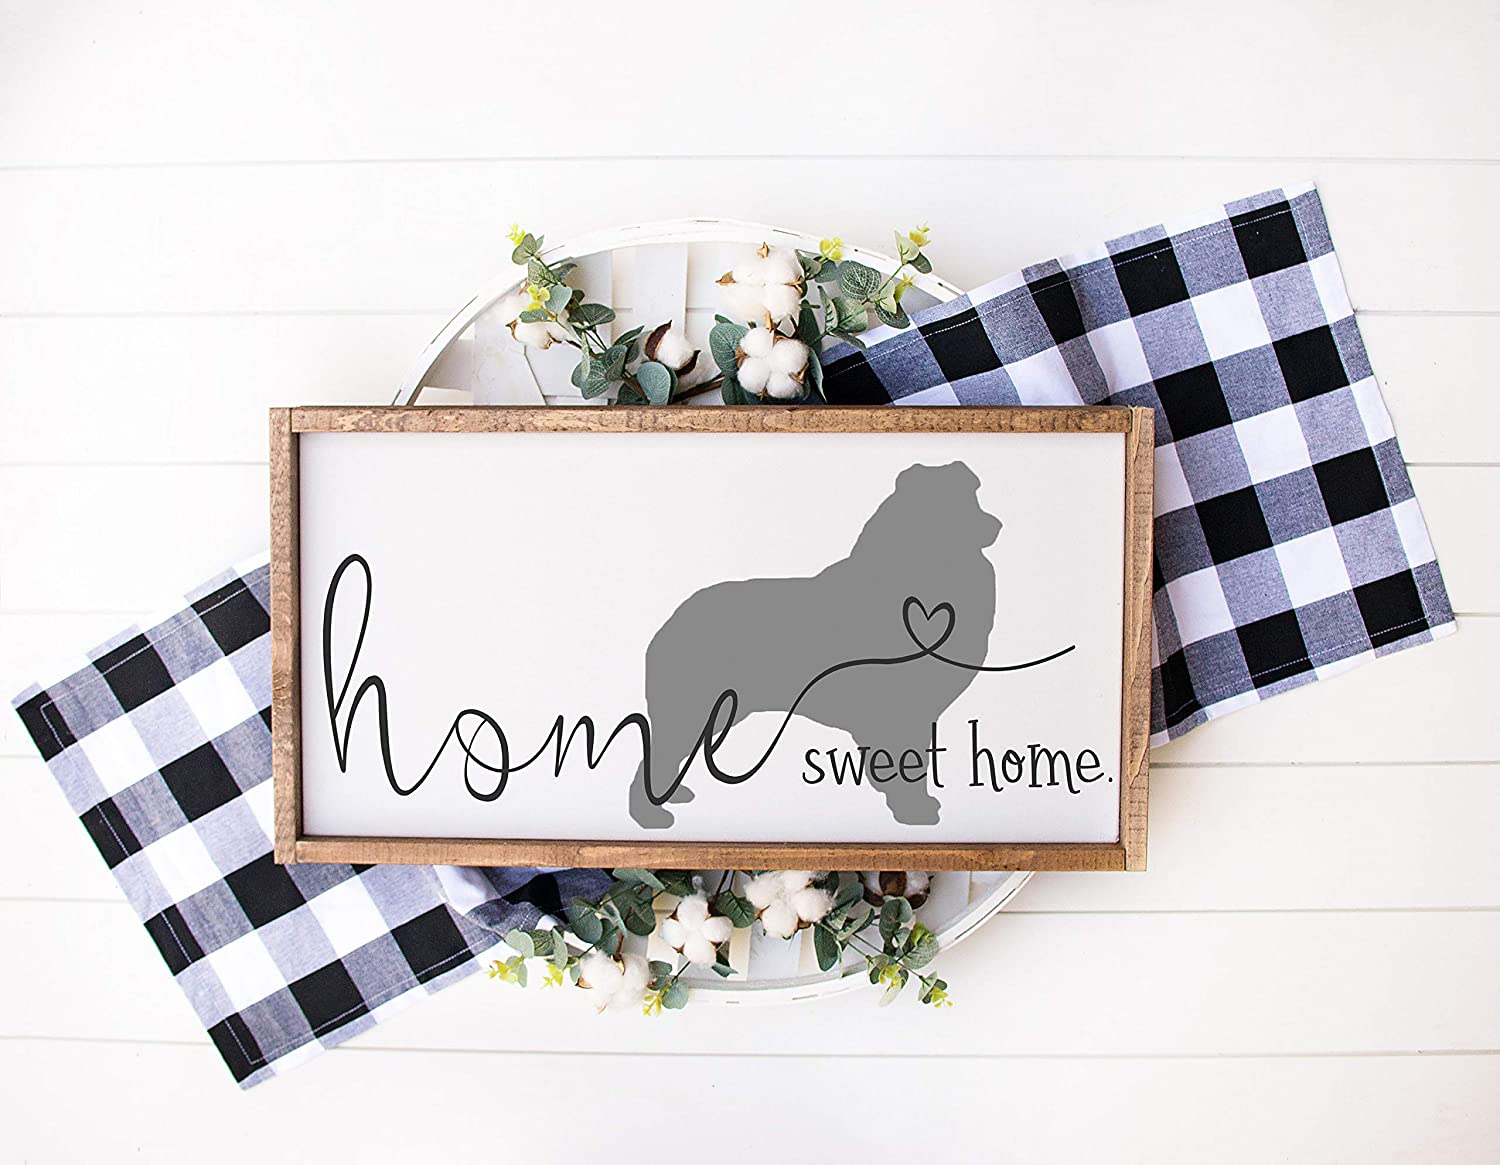 43LenaJon Home Sweet Home Wood Sign with Australian Shepherd Silhouette, Minimal Farmhouse Wood Sign, White Framed, Dog Silhouette, Gift for Do